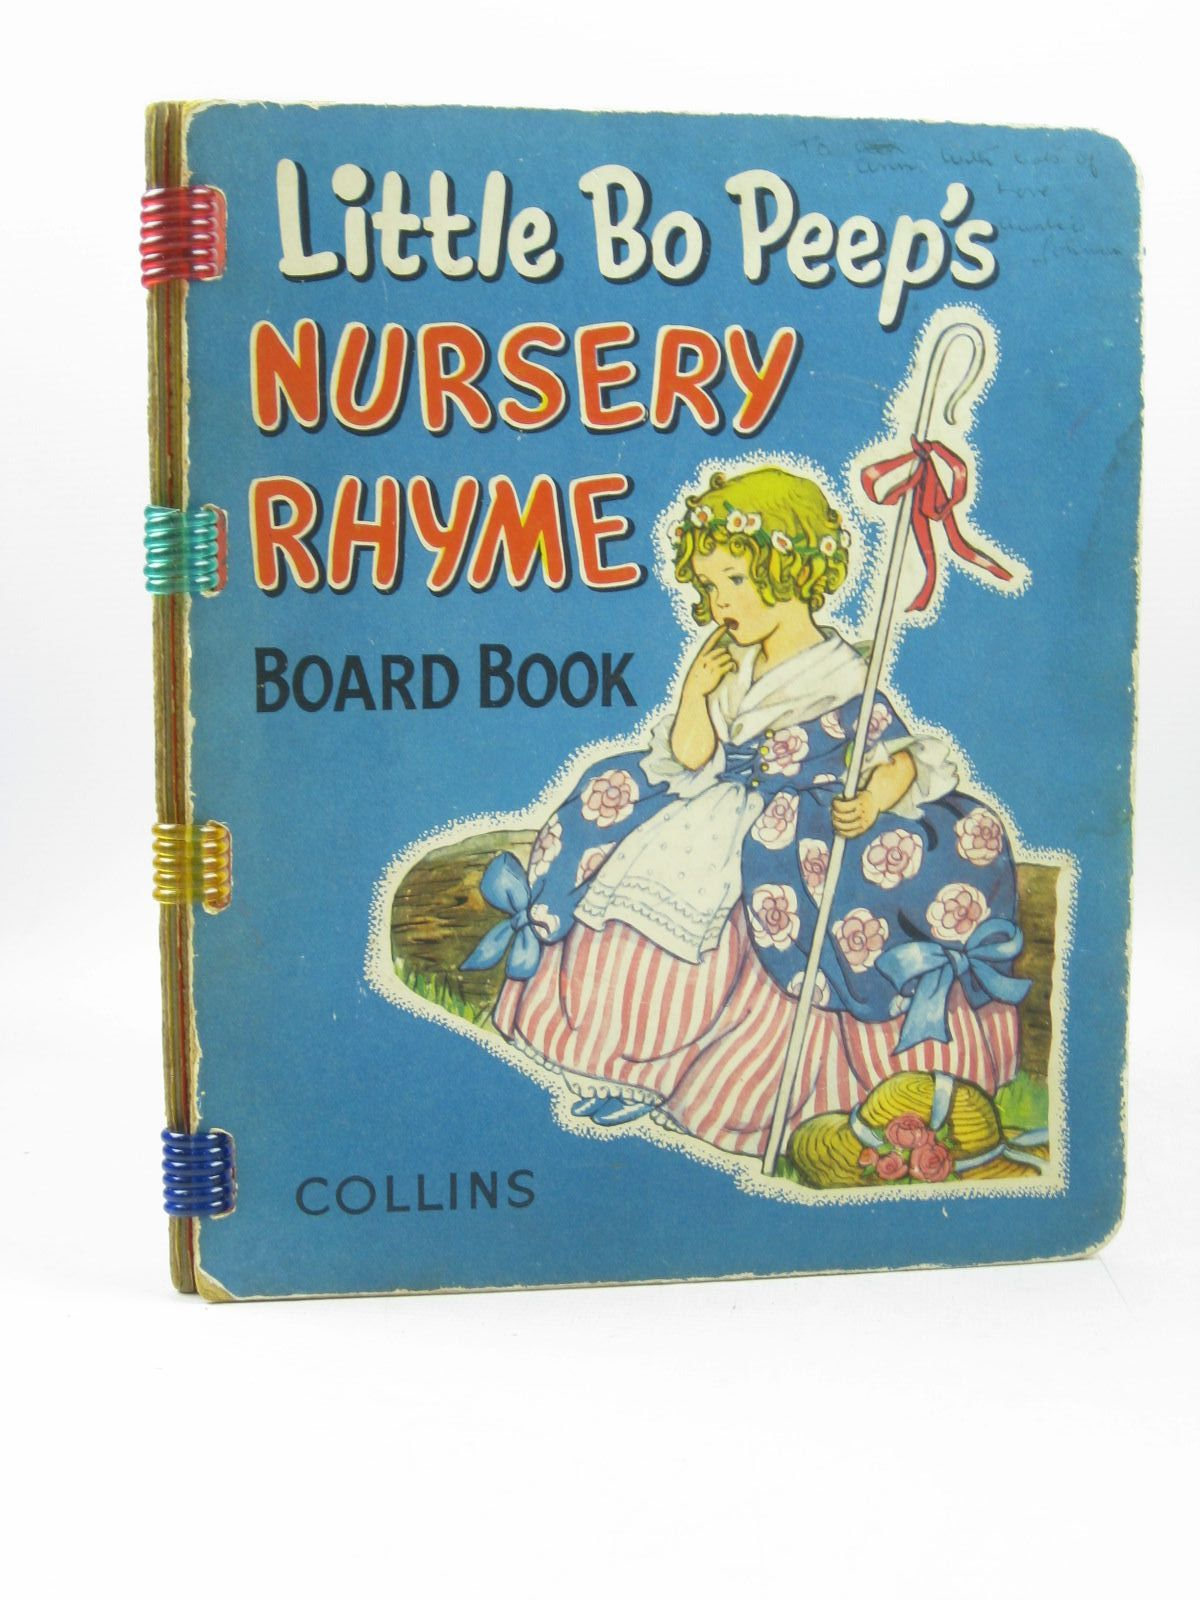 Photo of LITTLE BO-PEEP'S NURSERY RHYME BOARD BOOK illustrated by E.W.B., published by Collins (STOCK CODE: 1403232)  for sale by Stella & Rose's Books